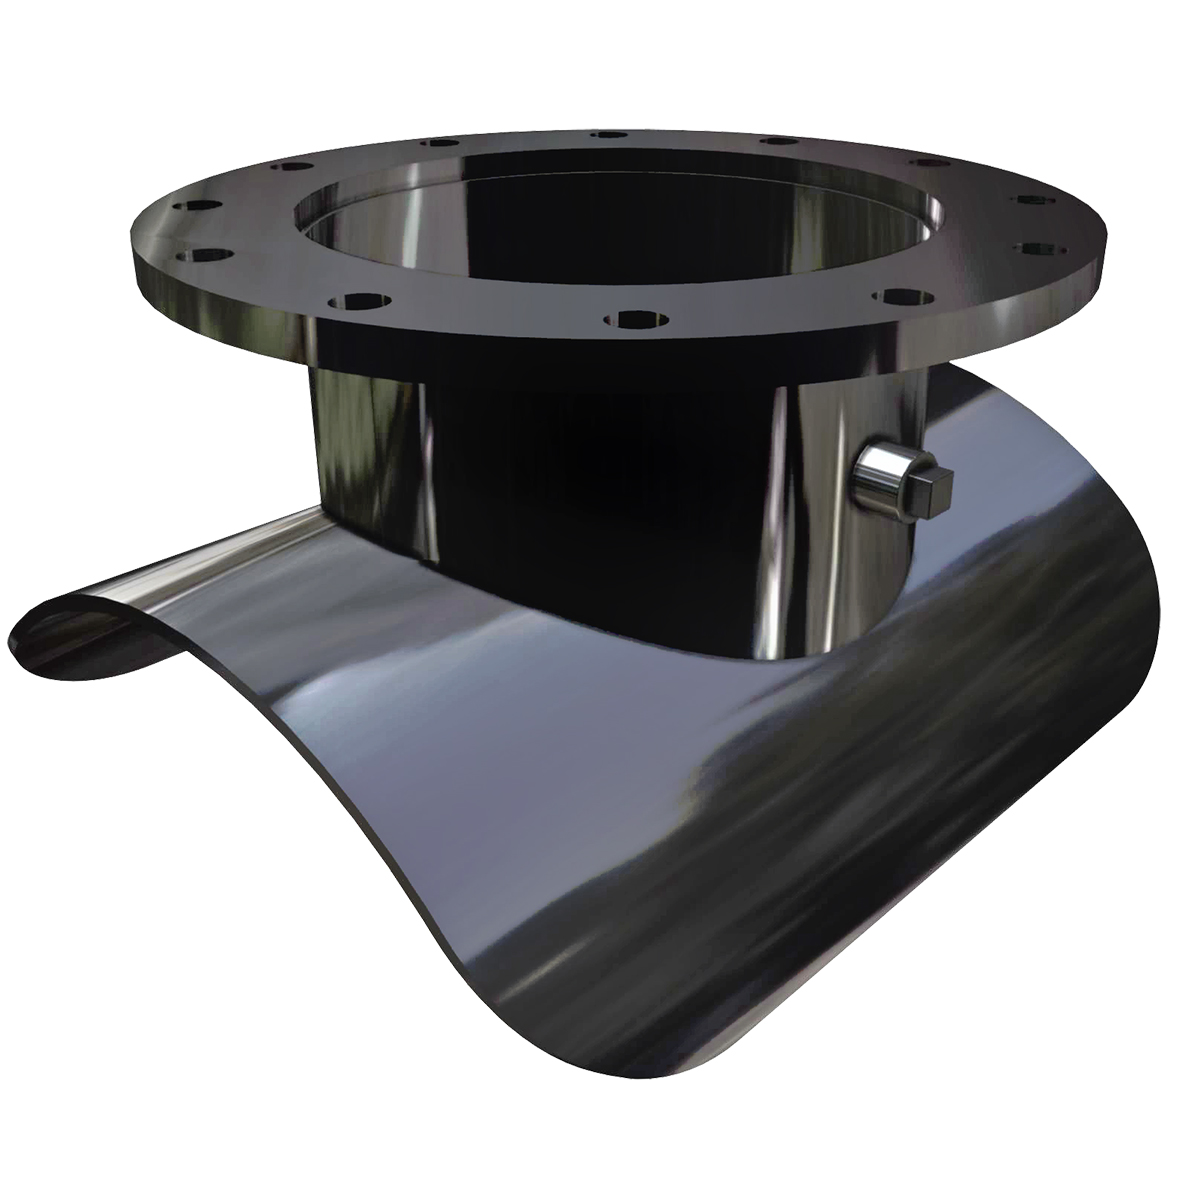 FTS445 - Fabricated steel weld-on tapping outletNominal Sizes6 - 96 inches, larger sizes available upon requestWorking PressureUp to 175 psi.Pipe CompatibilitySteel pipe